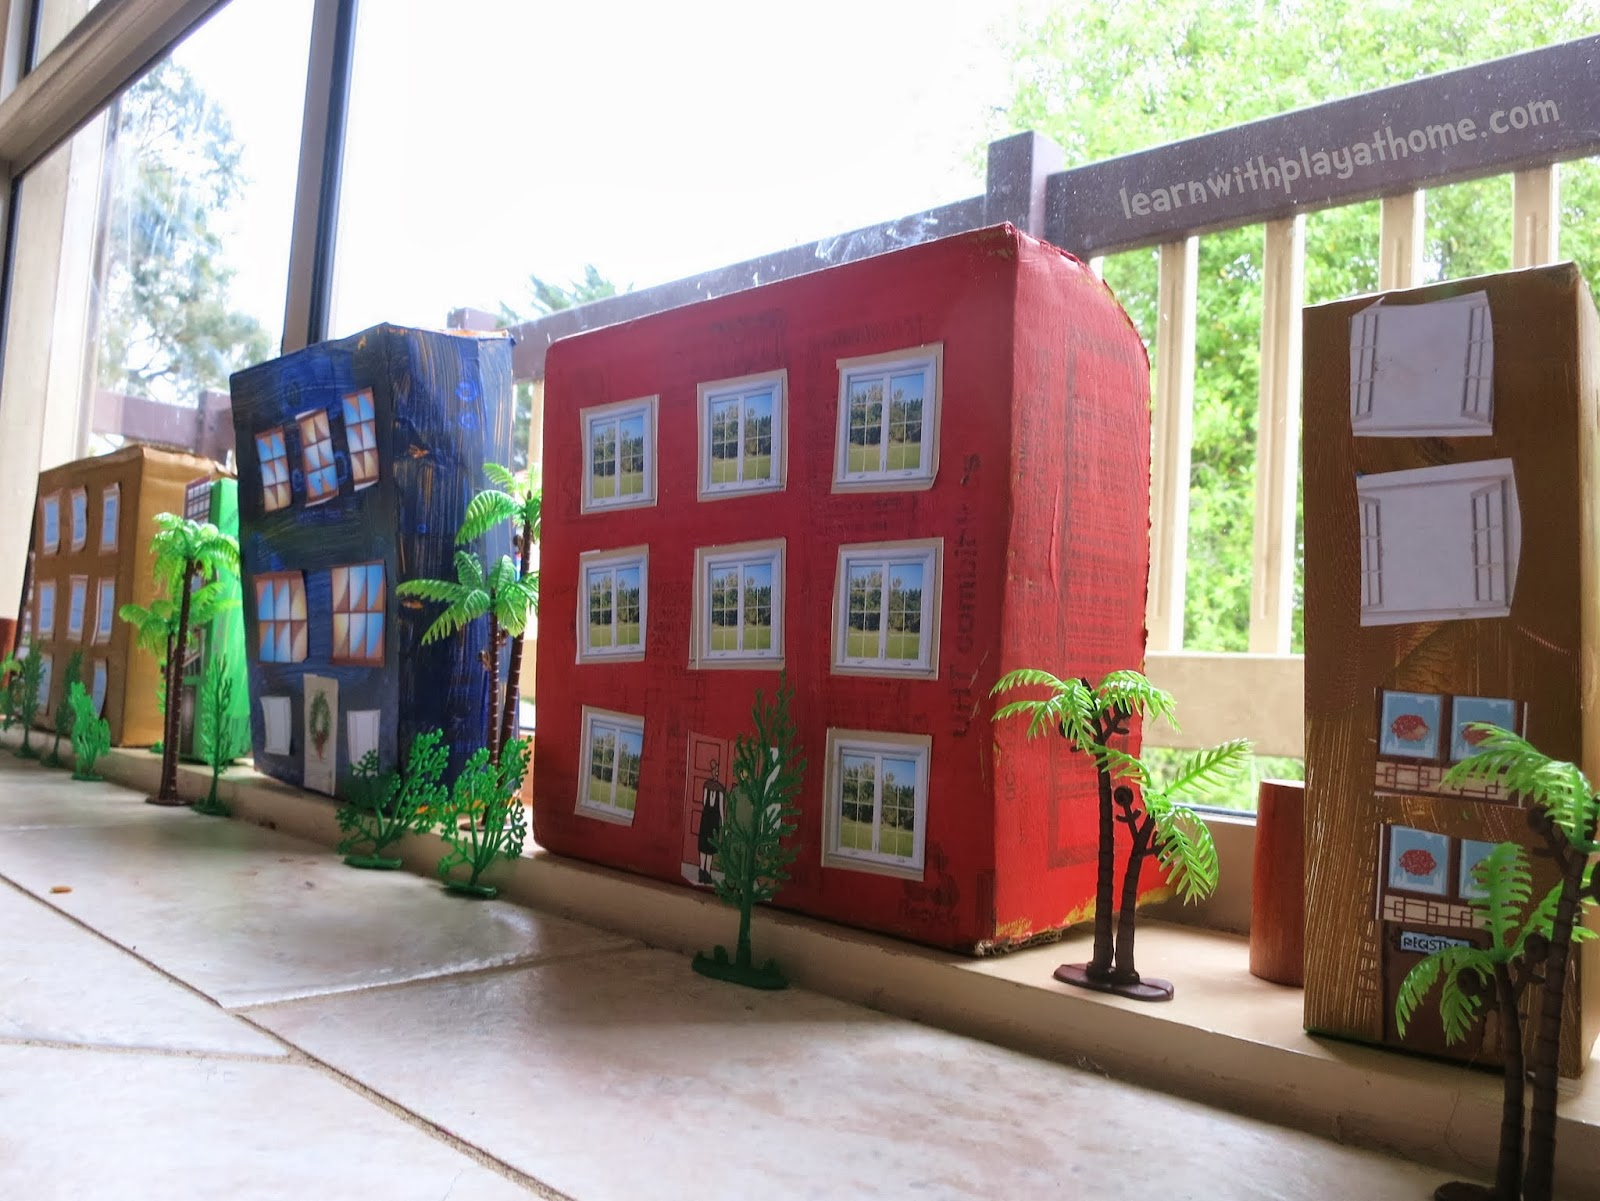 Learn with play at home create a box city cutting for The model apartment play